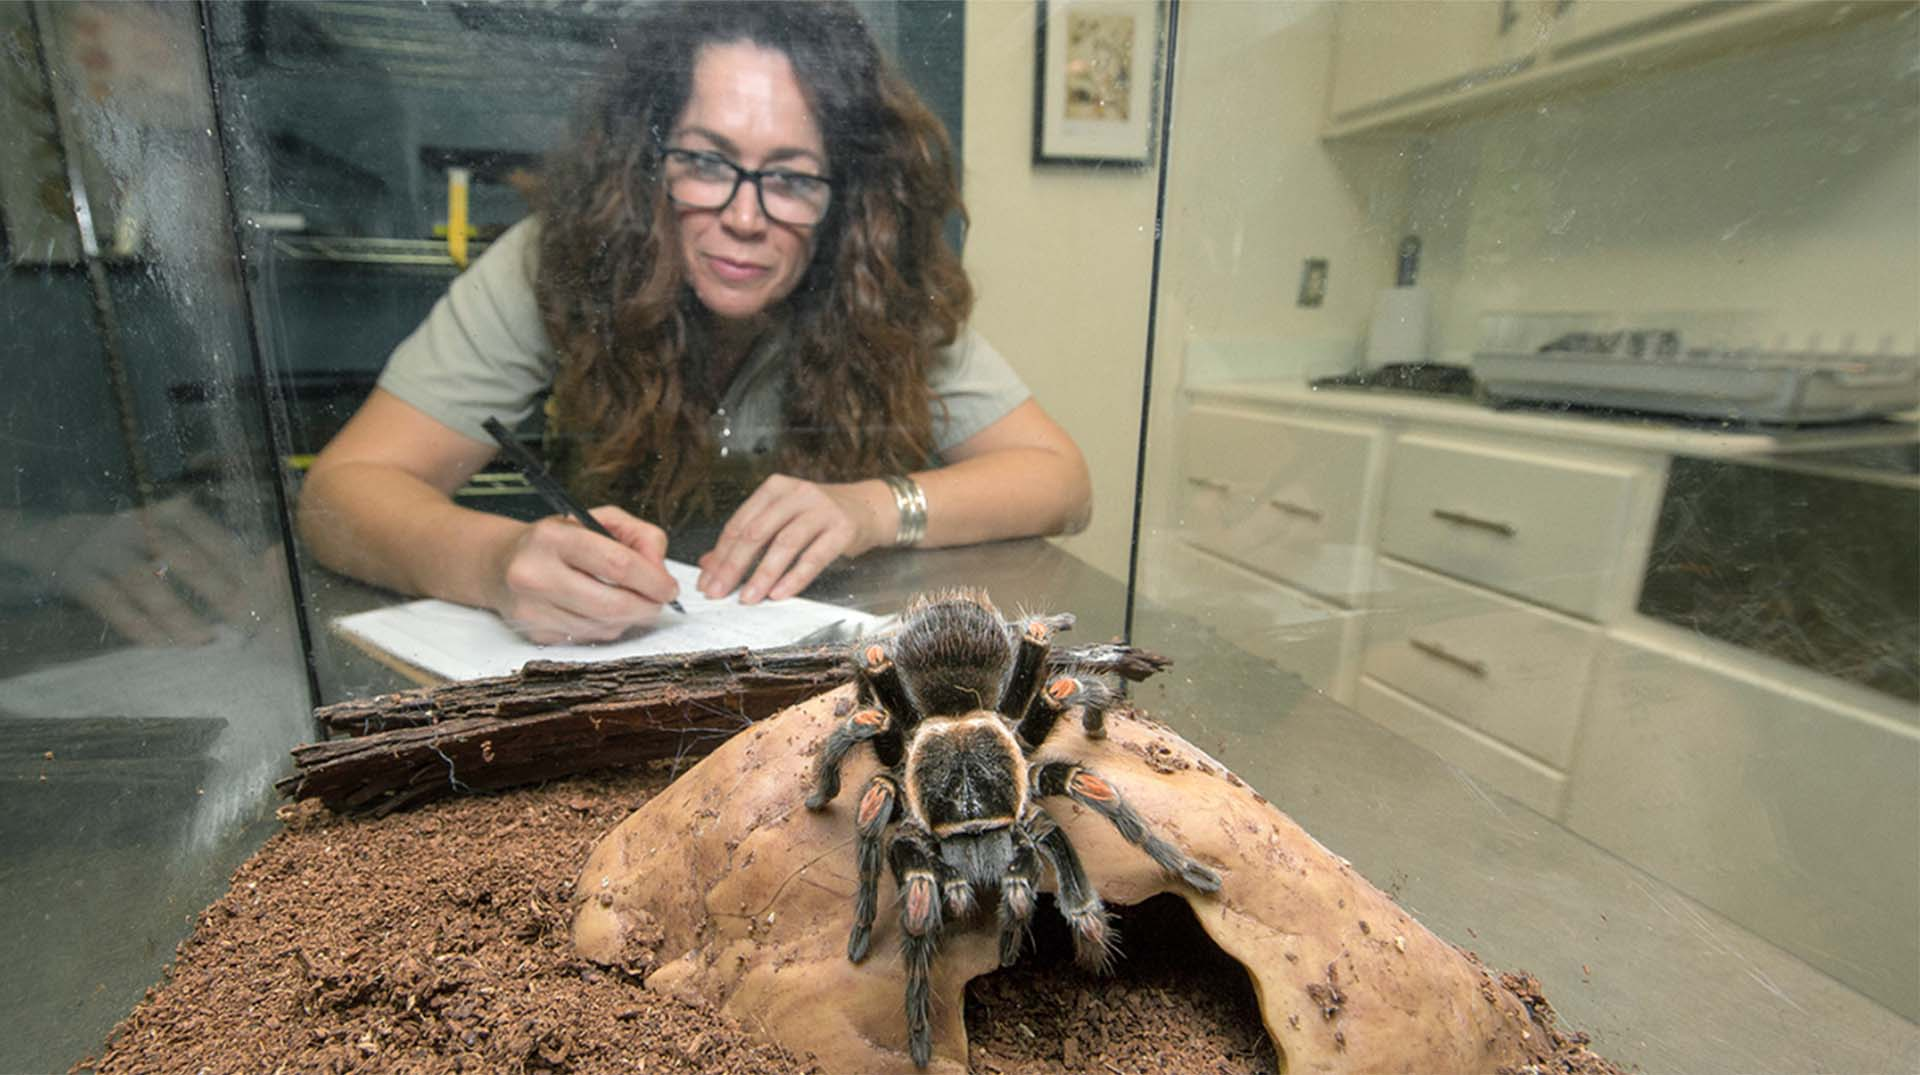 Paige Howorth observing a tarantula at Arachnid Rescue Center.